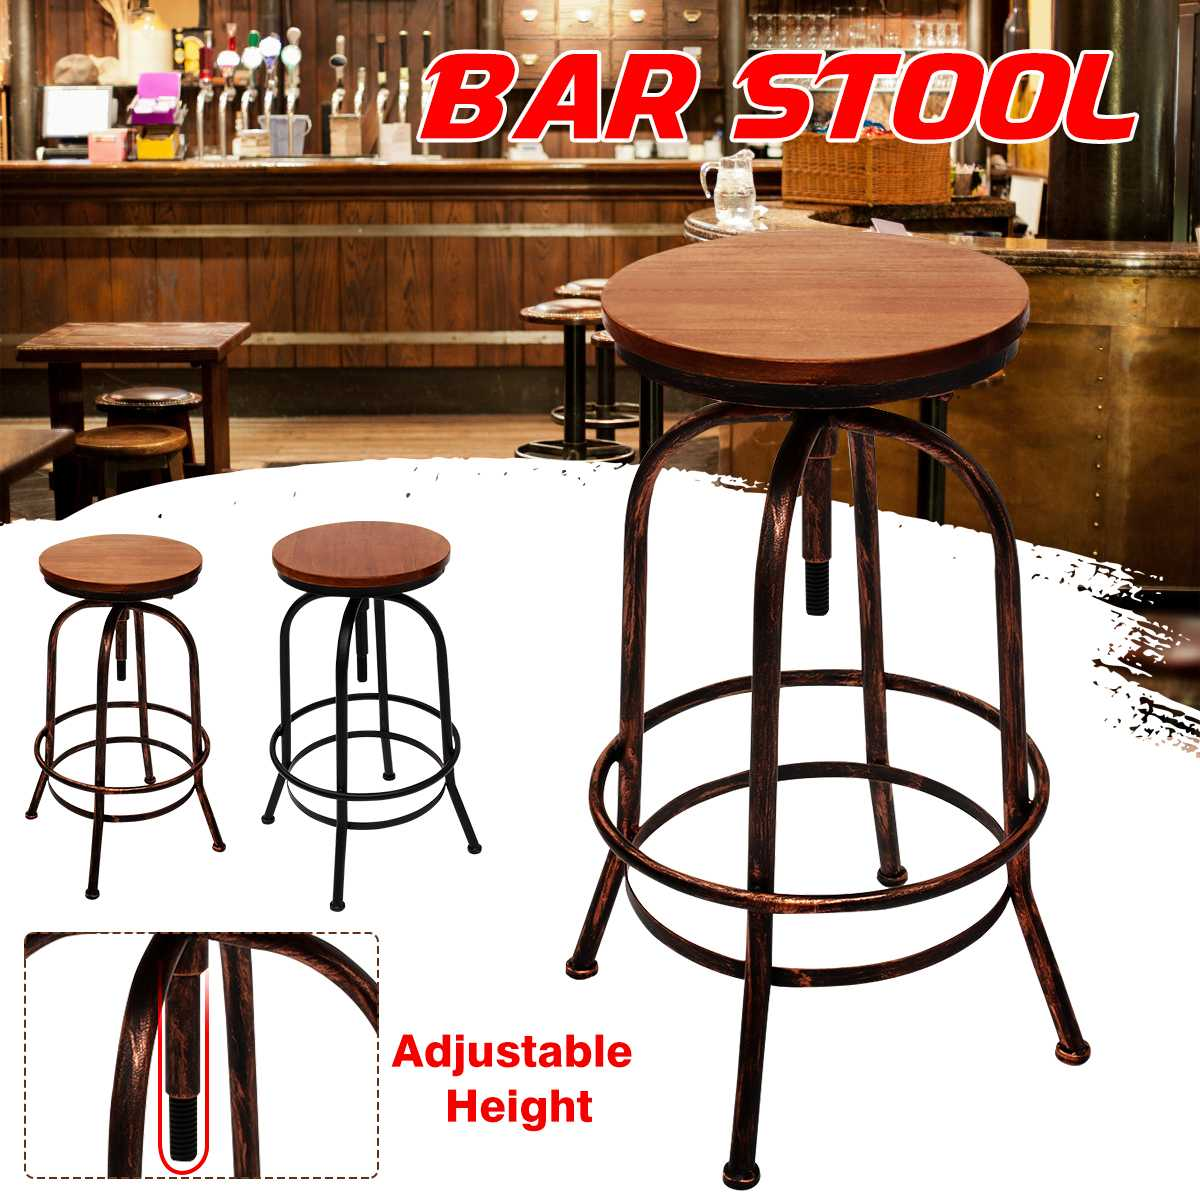 Vintage Bar Stool Industrial Retro Solid Wood Seat Bar Chair Adjustable Height Modern High Stool Kitchen Dining Chair Decoration